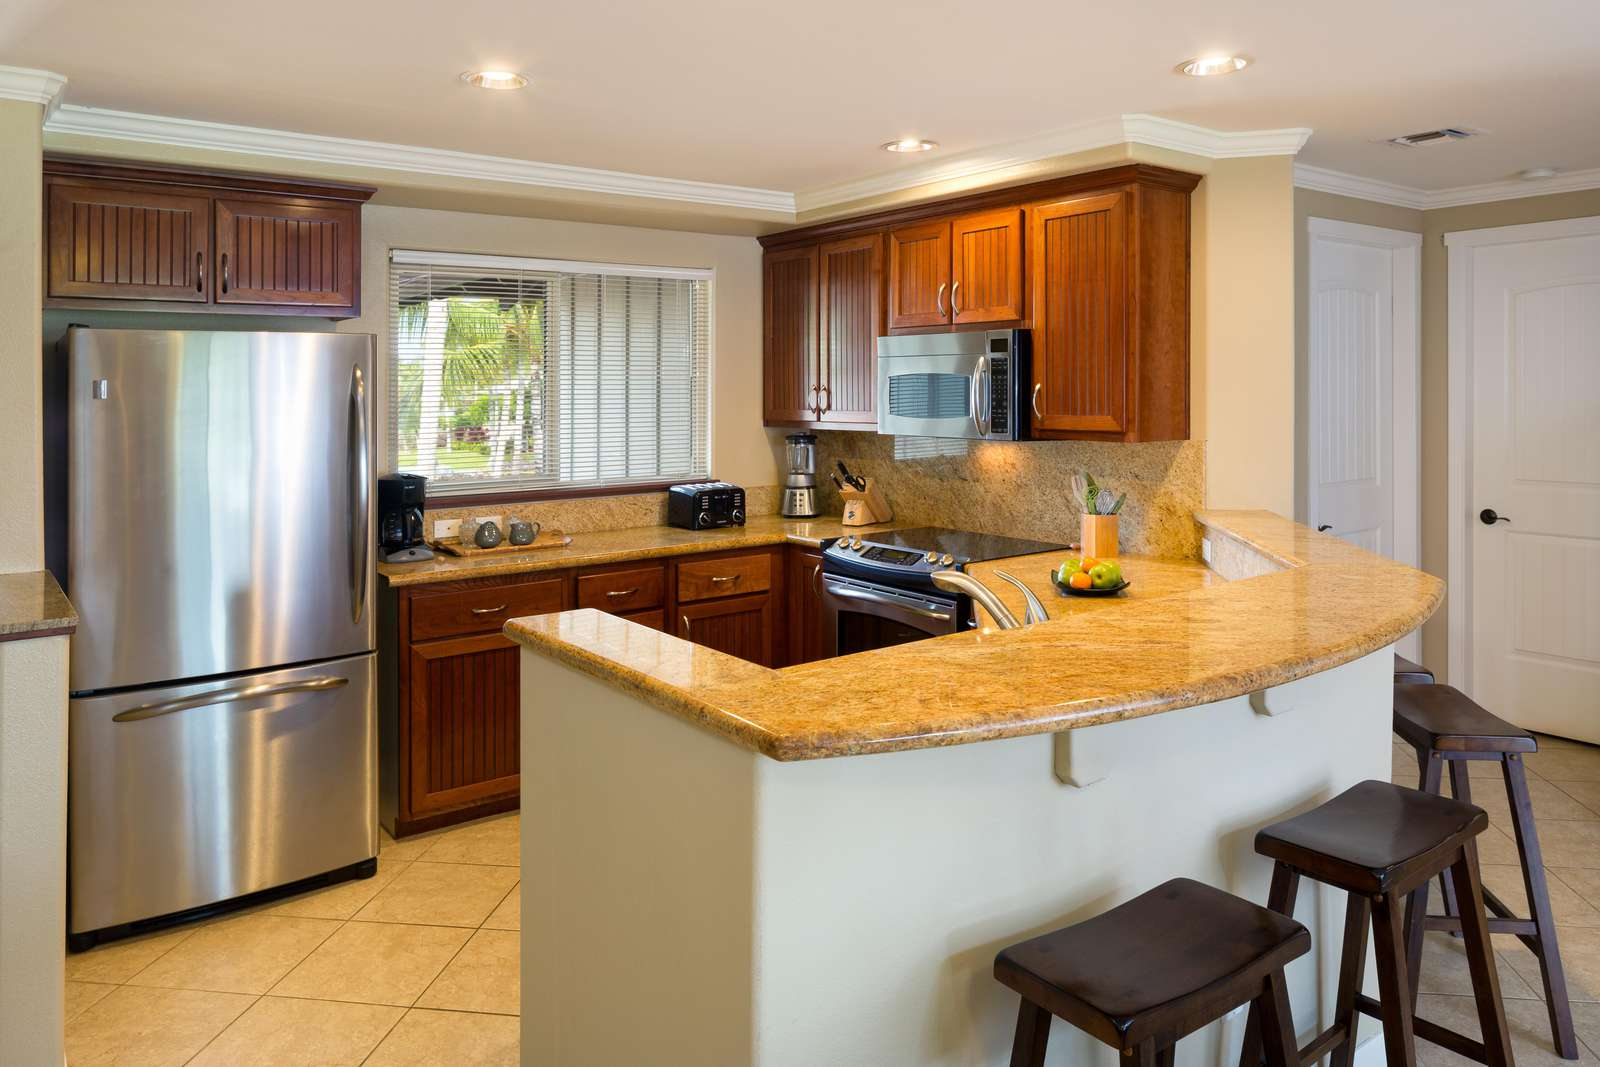 Large kitchen, stainless steel appliances, granite counter tops and hard wood cabinets